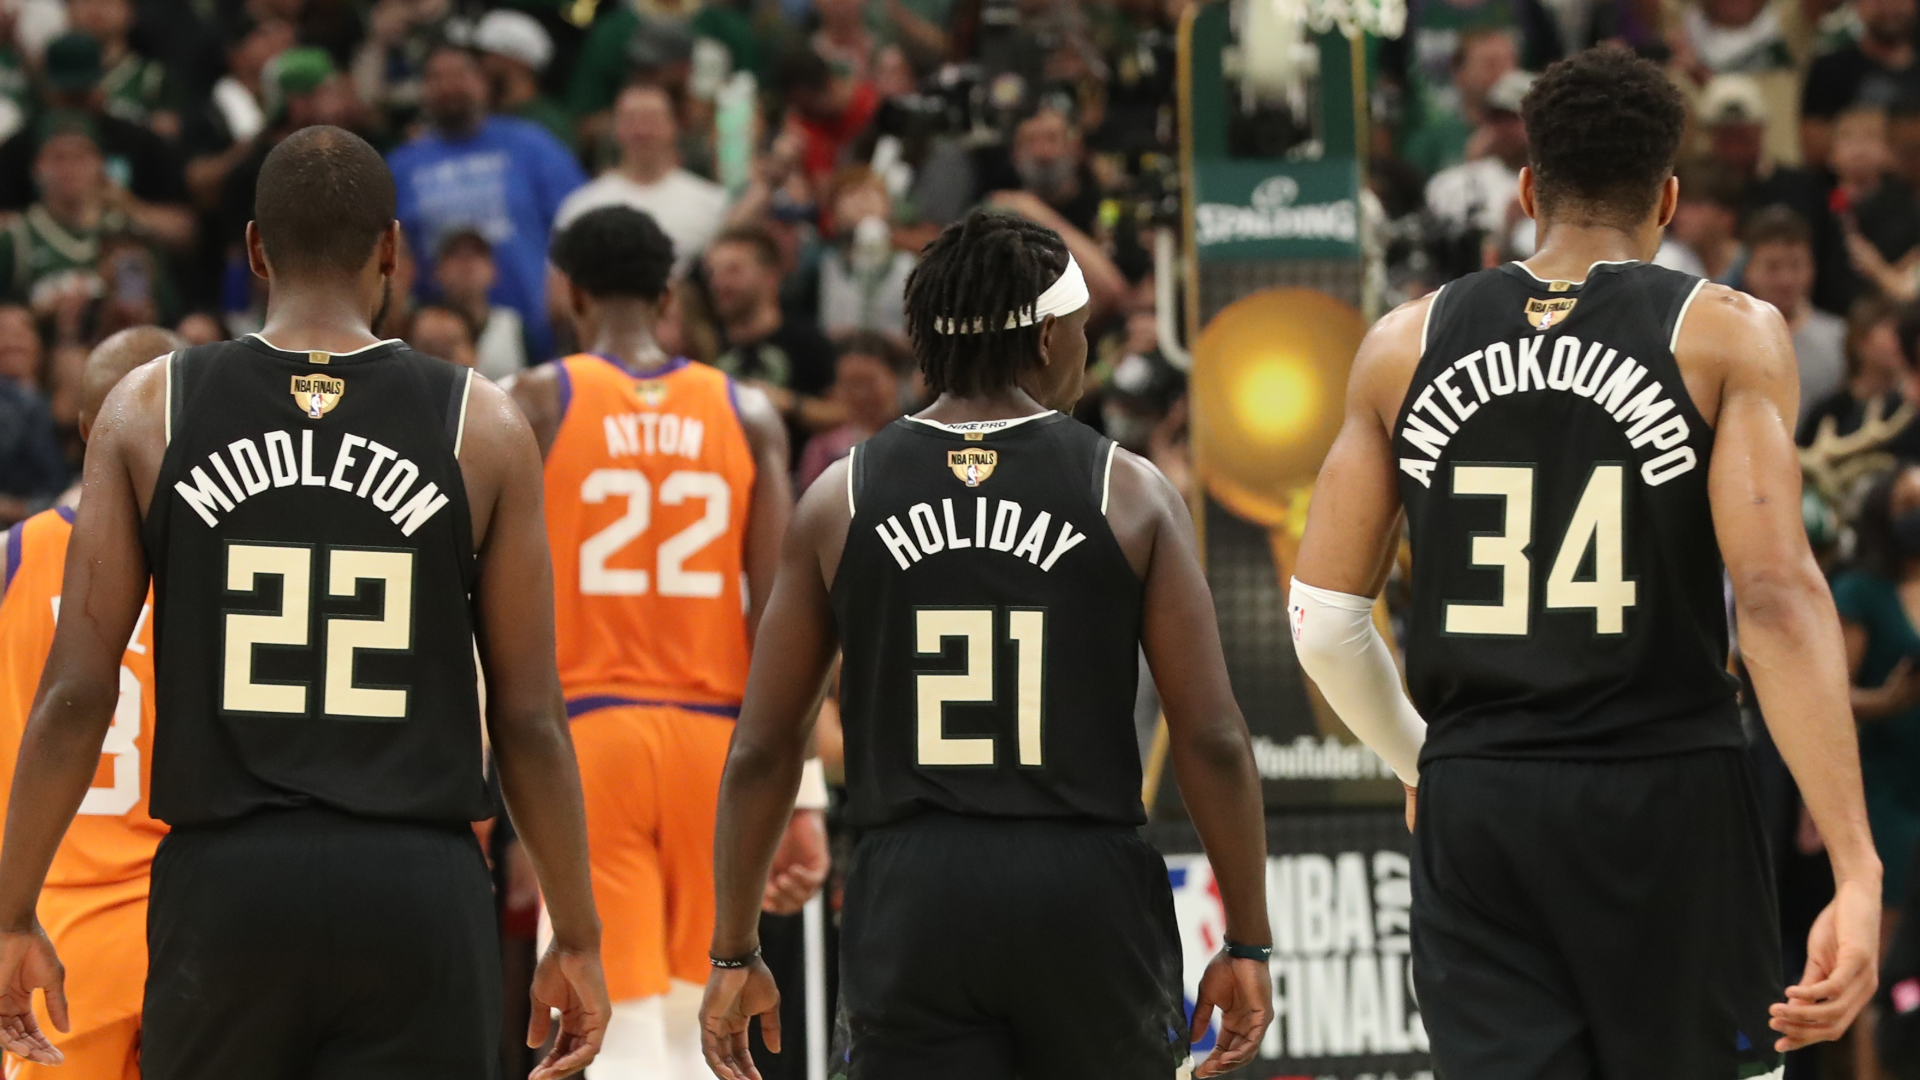 NBA Finals 2021: NBA players react on Twitter to Giannis Antetokounmpo's historic Game 6 performance